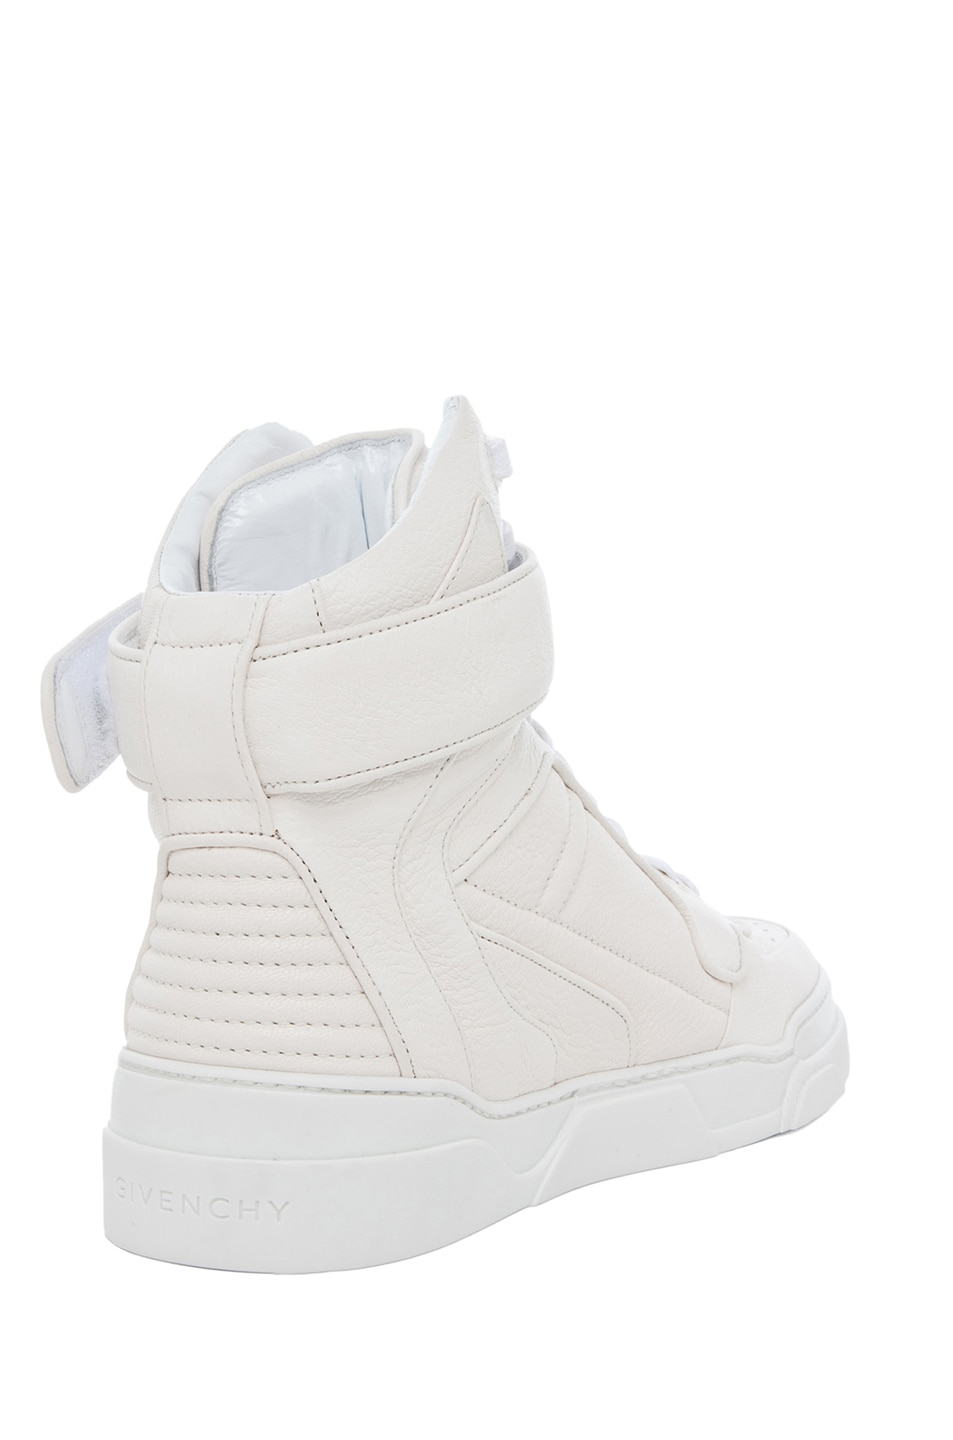 Image 3 of GIVENCHY Leather Sneakers in Optic White